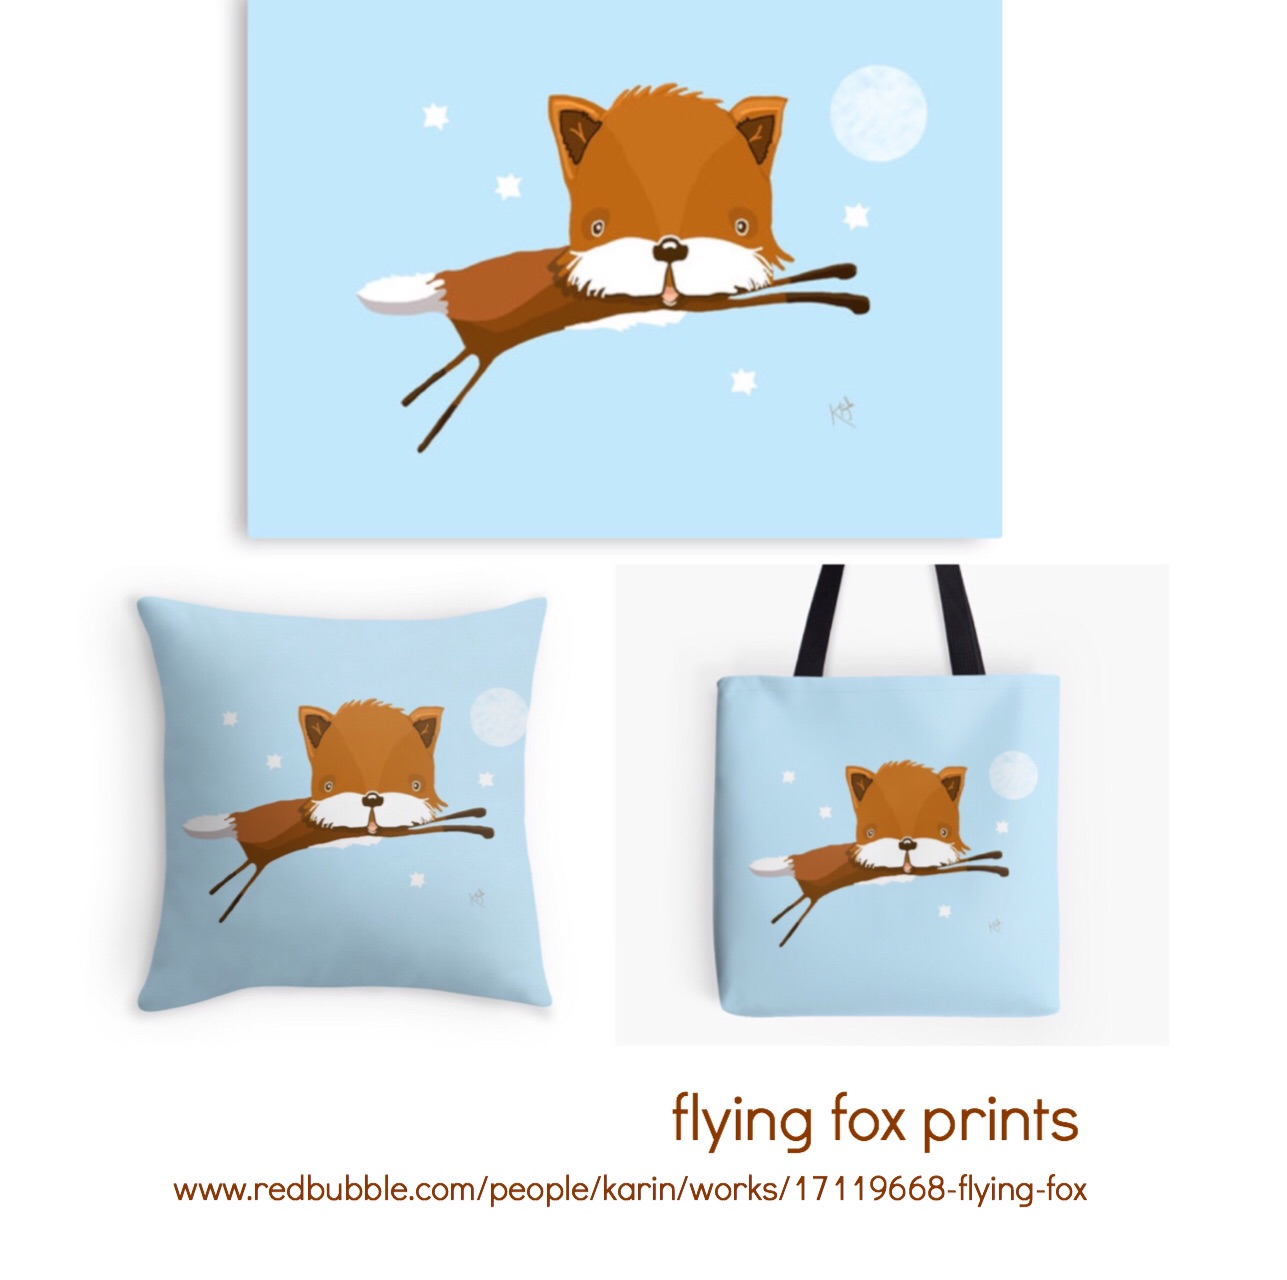 Flying Fox prints, pillows and bags etc